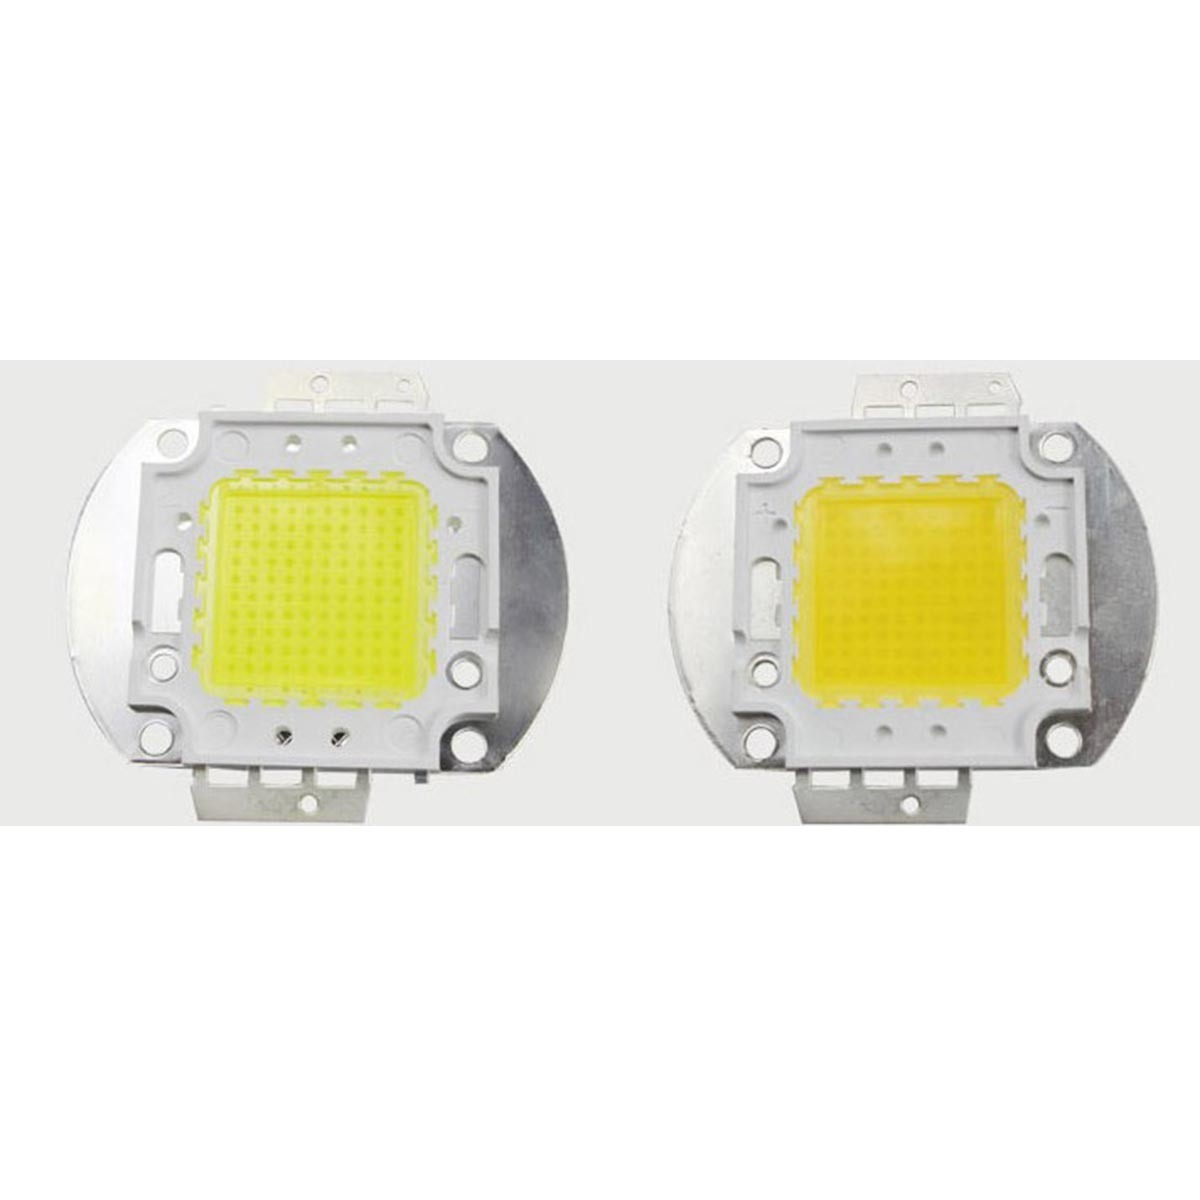 Warm Cold 10 W 20W 30W  Led Chip DC 12 V 36 V COB  LED Lamp Diodes DIY 50 W 100 W Schijnwerper Spotlight Lamp